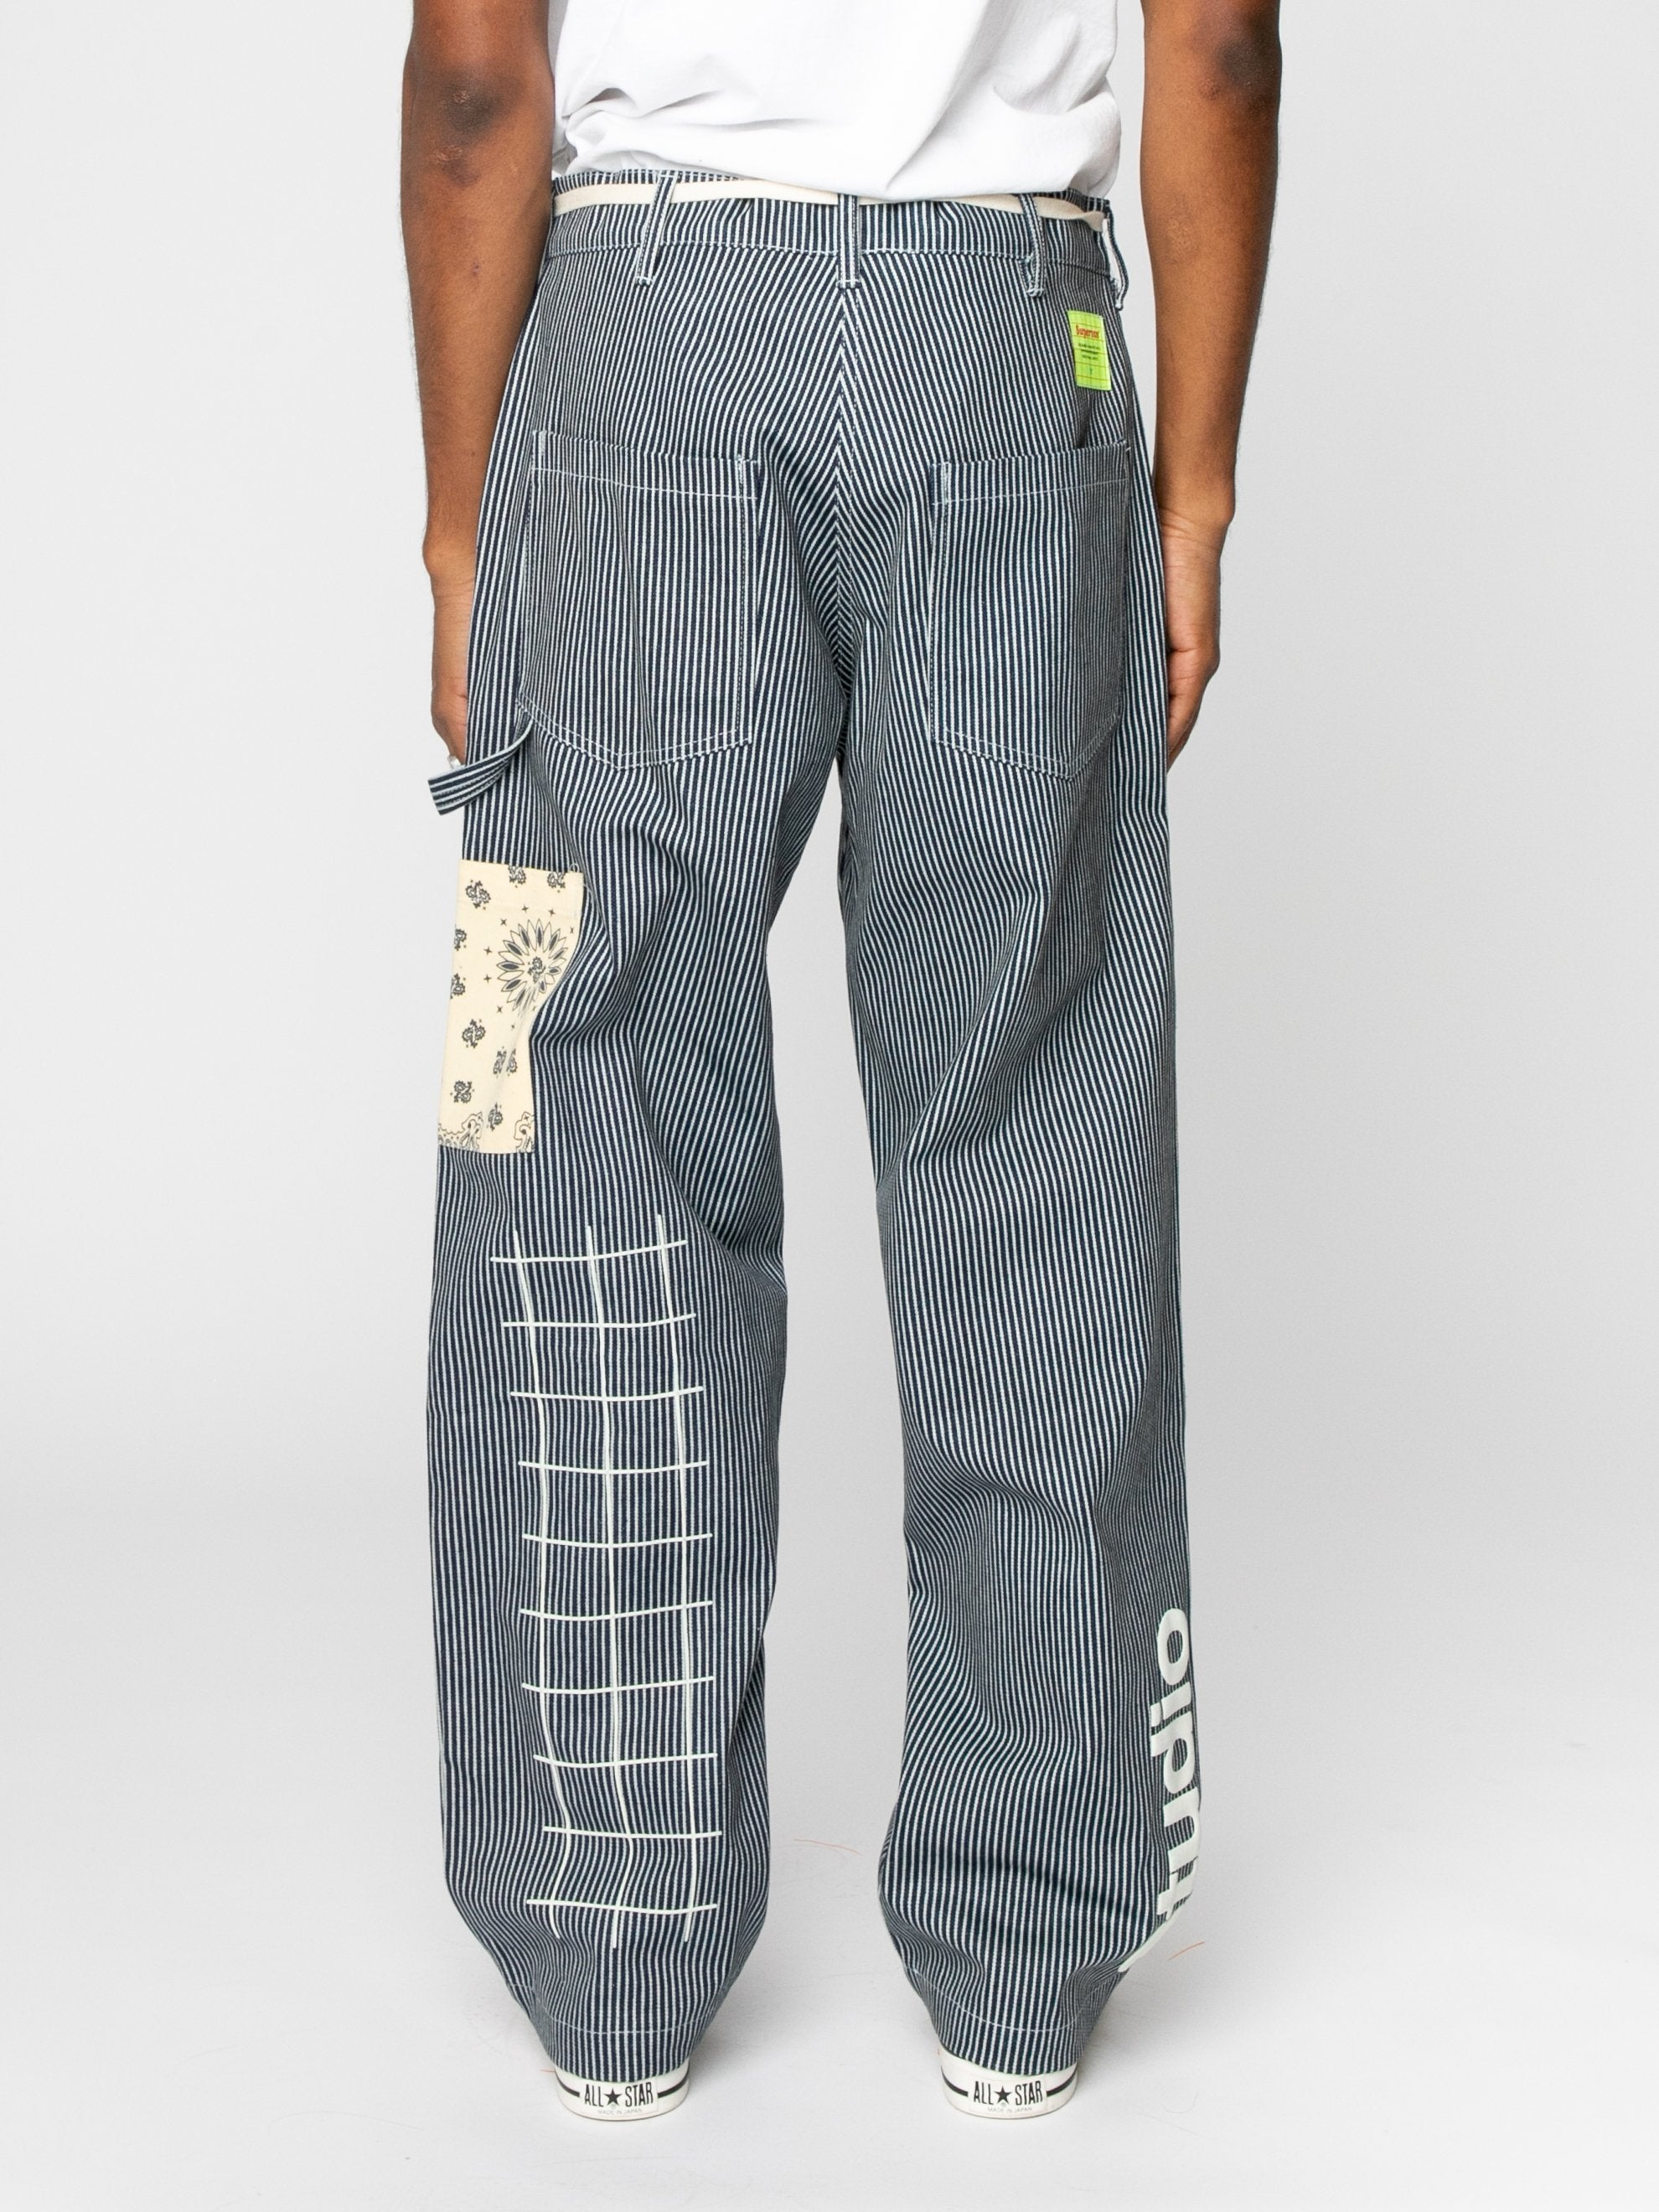 Studio Painter Pant